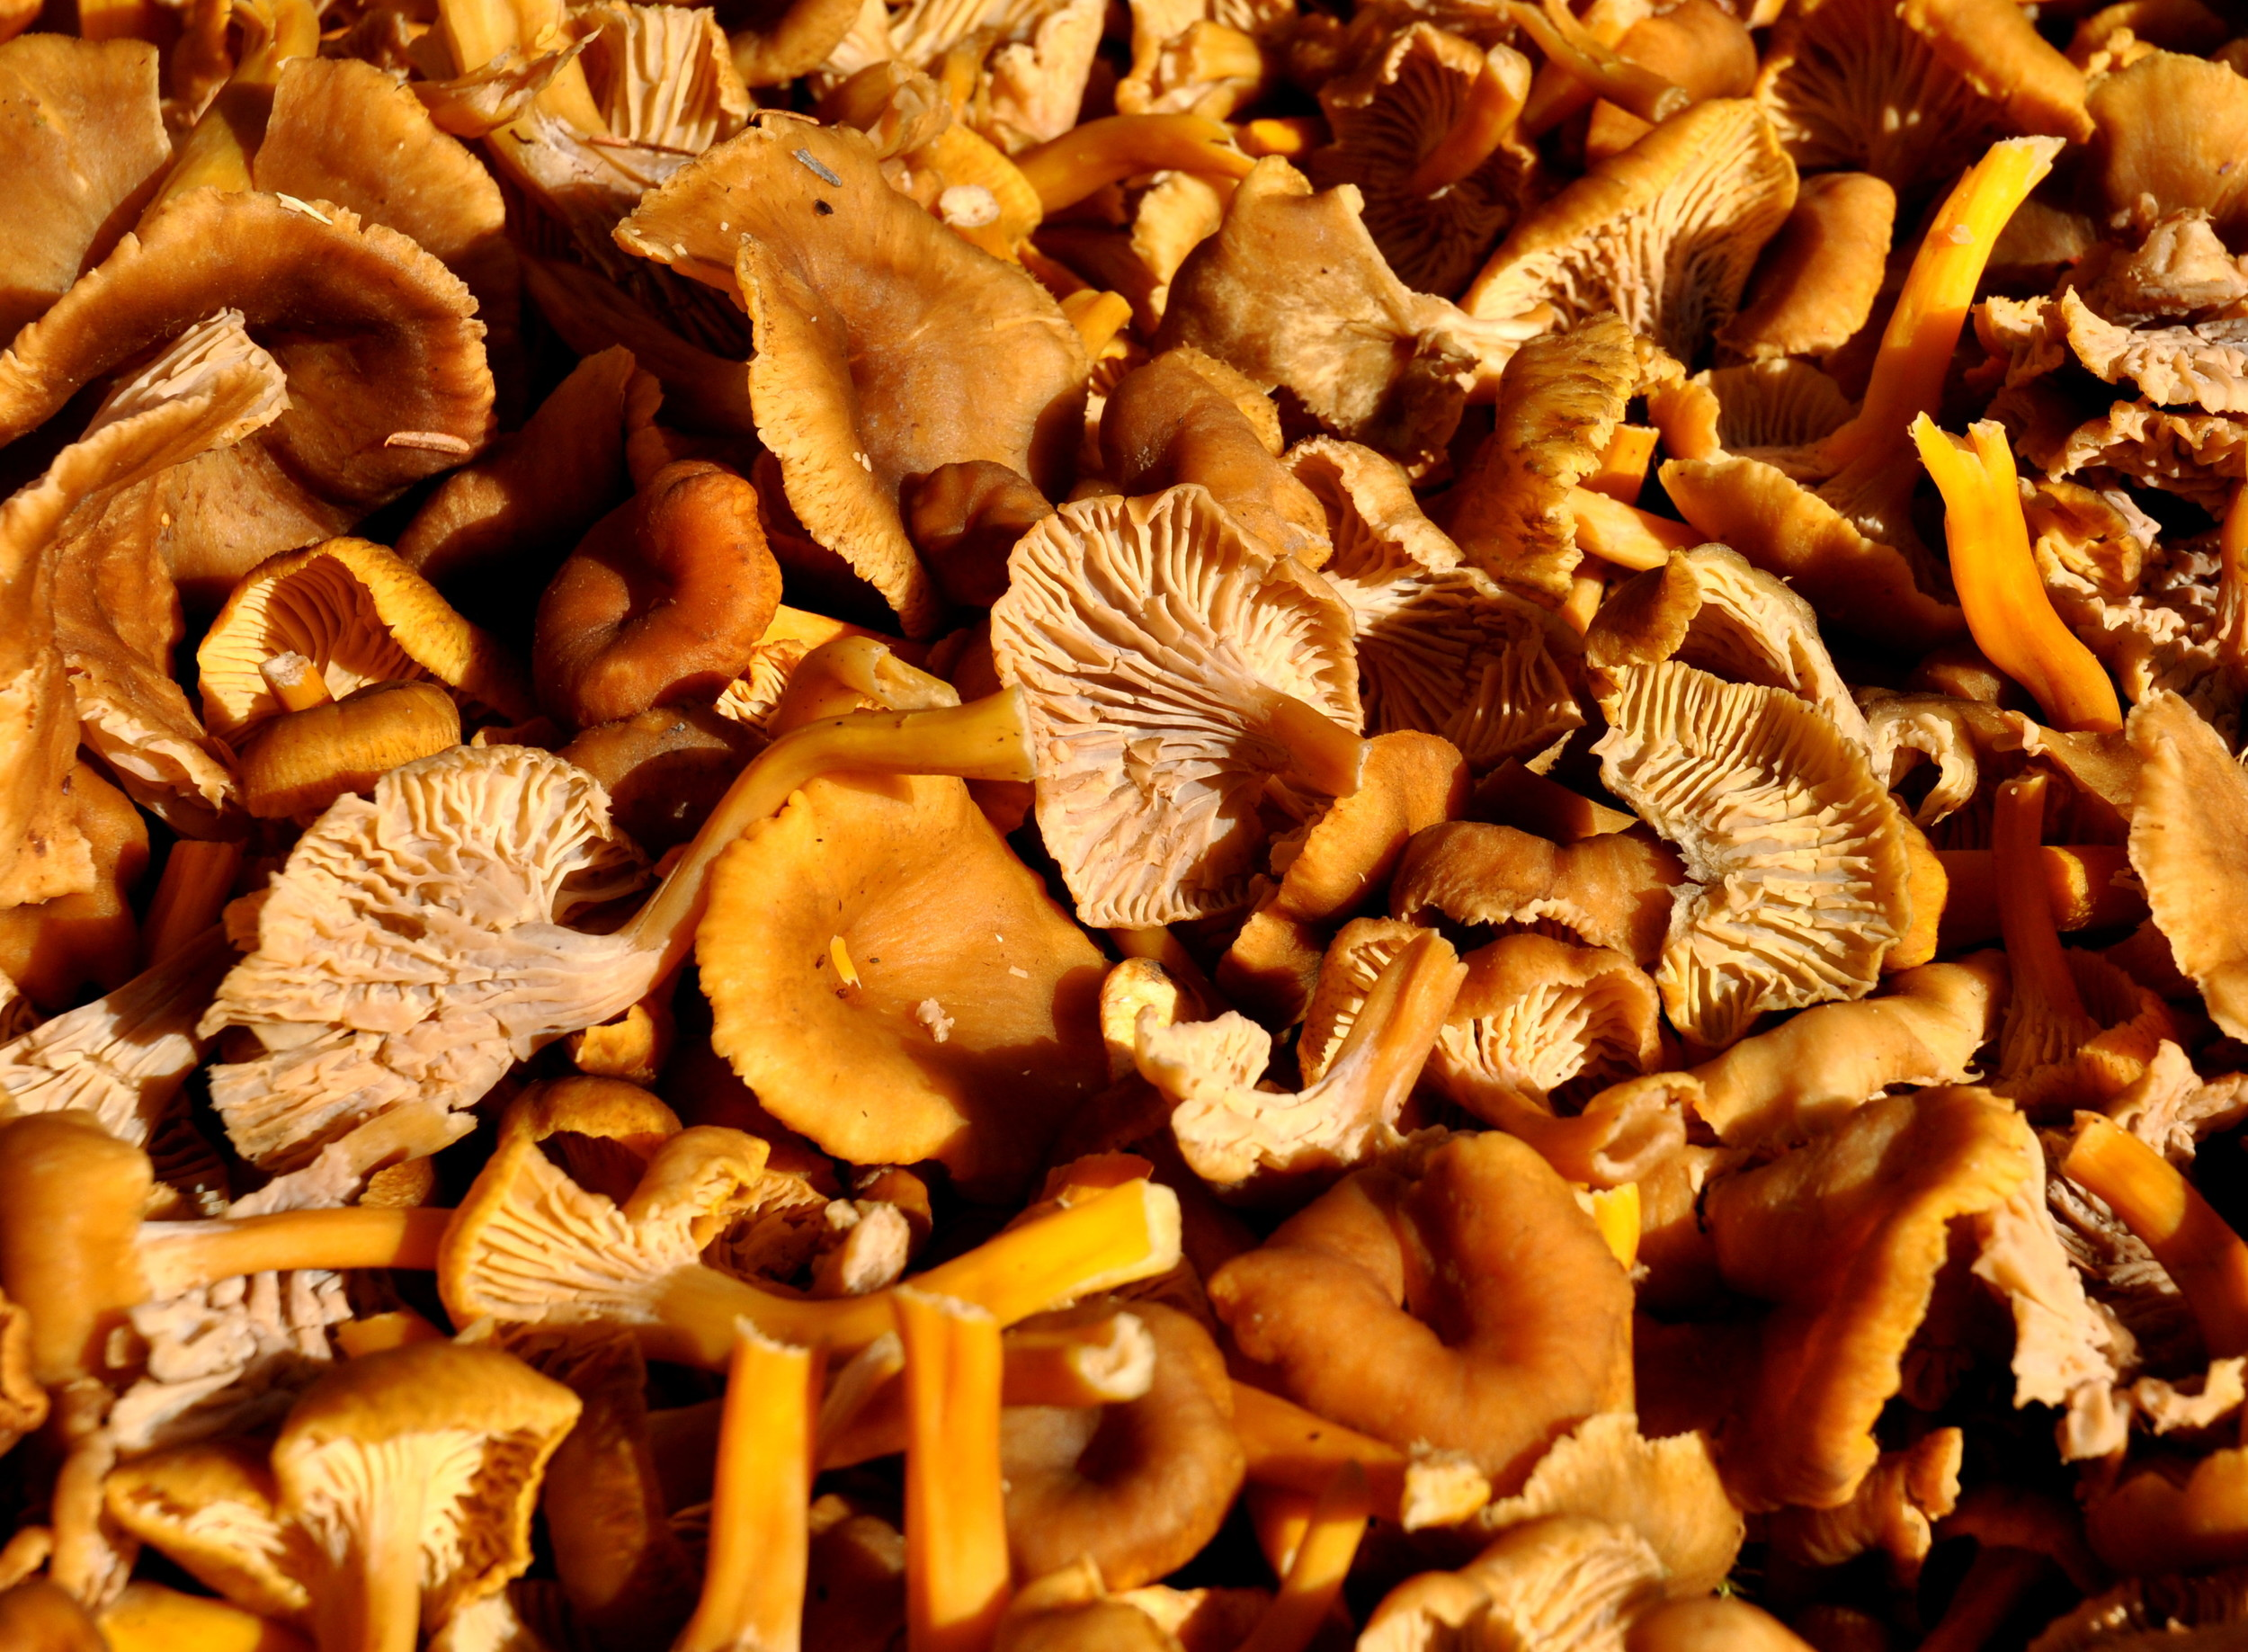 Yellowfoot chanterelle mushrooms from Foraged & Found Edibles. Copyright 2013 by Zachary D. Lyons.